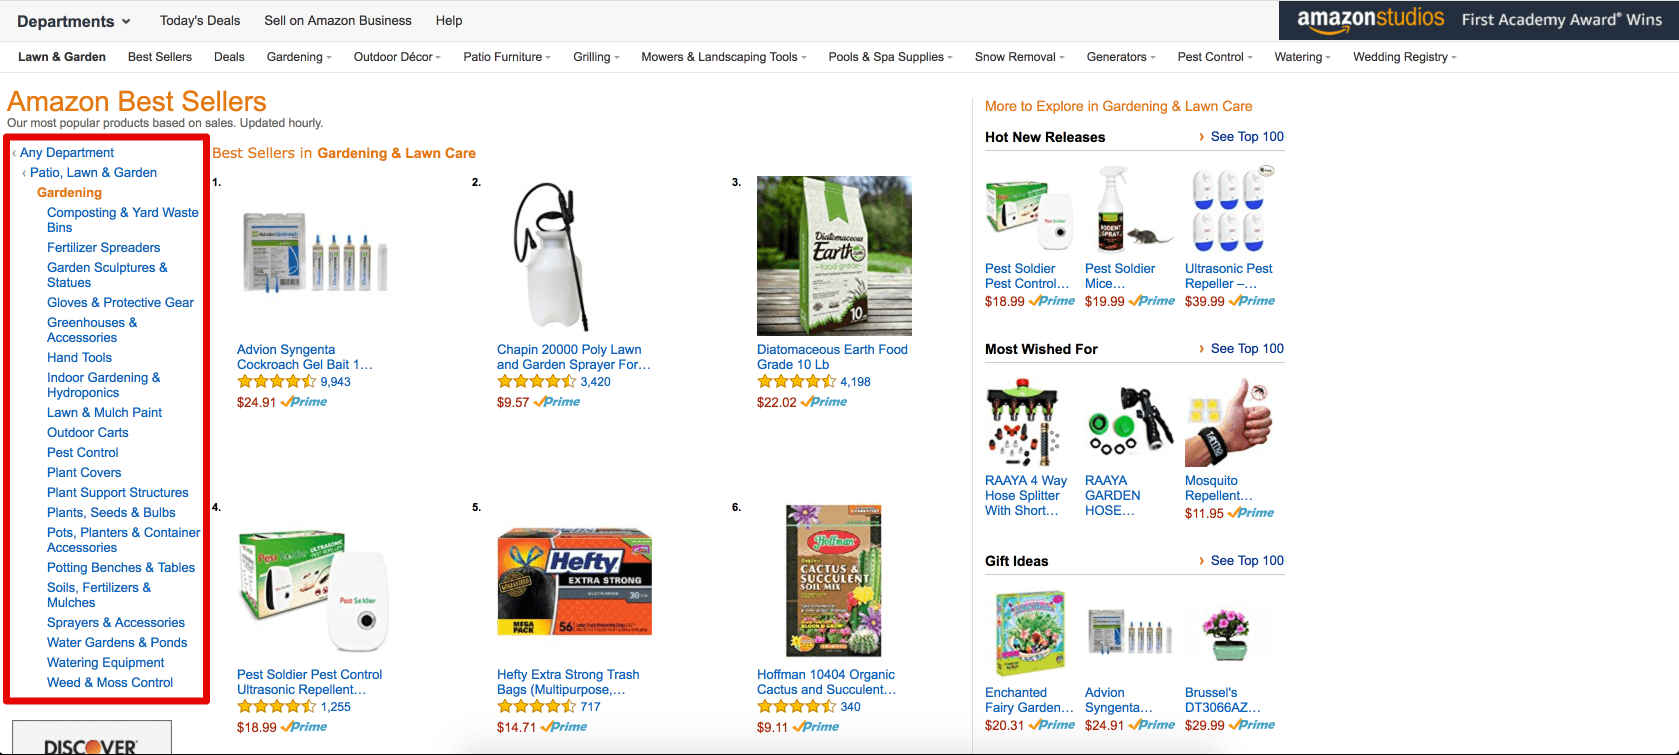 Amazon Best Sellers: Best Gardening & Lawn Care